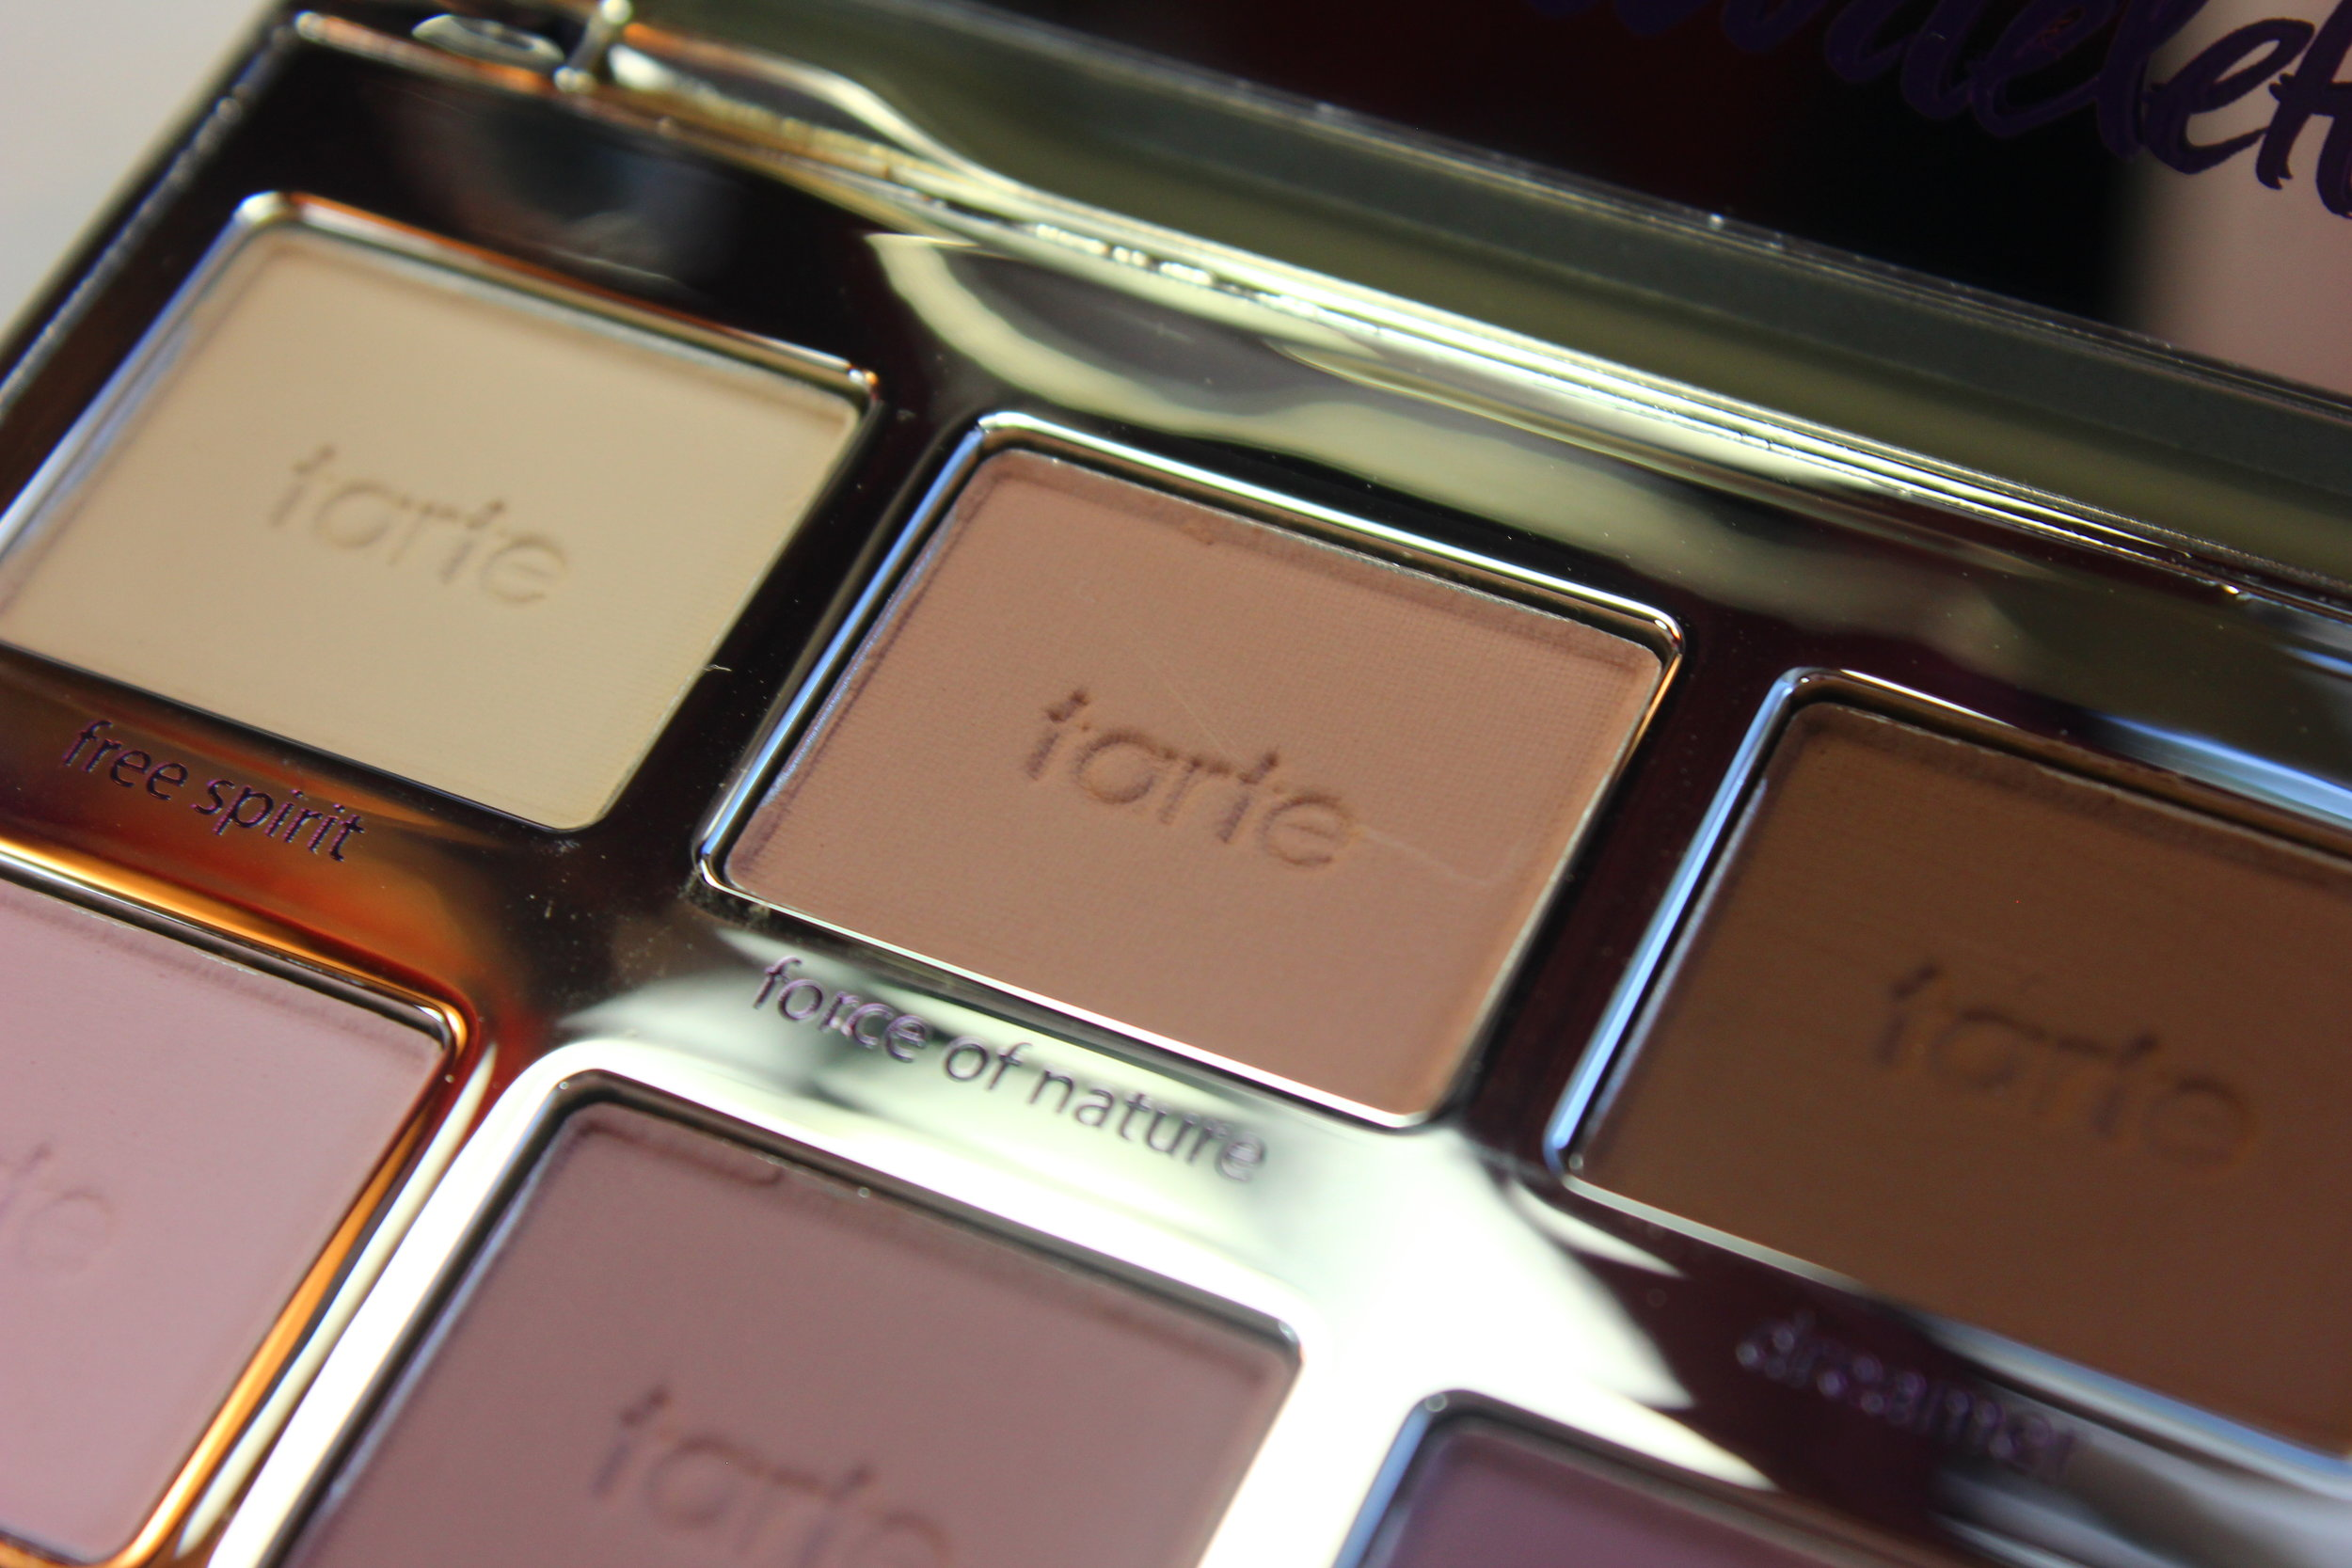 Force Of Nature - Tartelette Palette 1